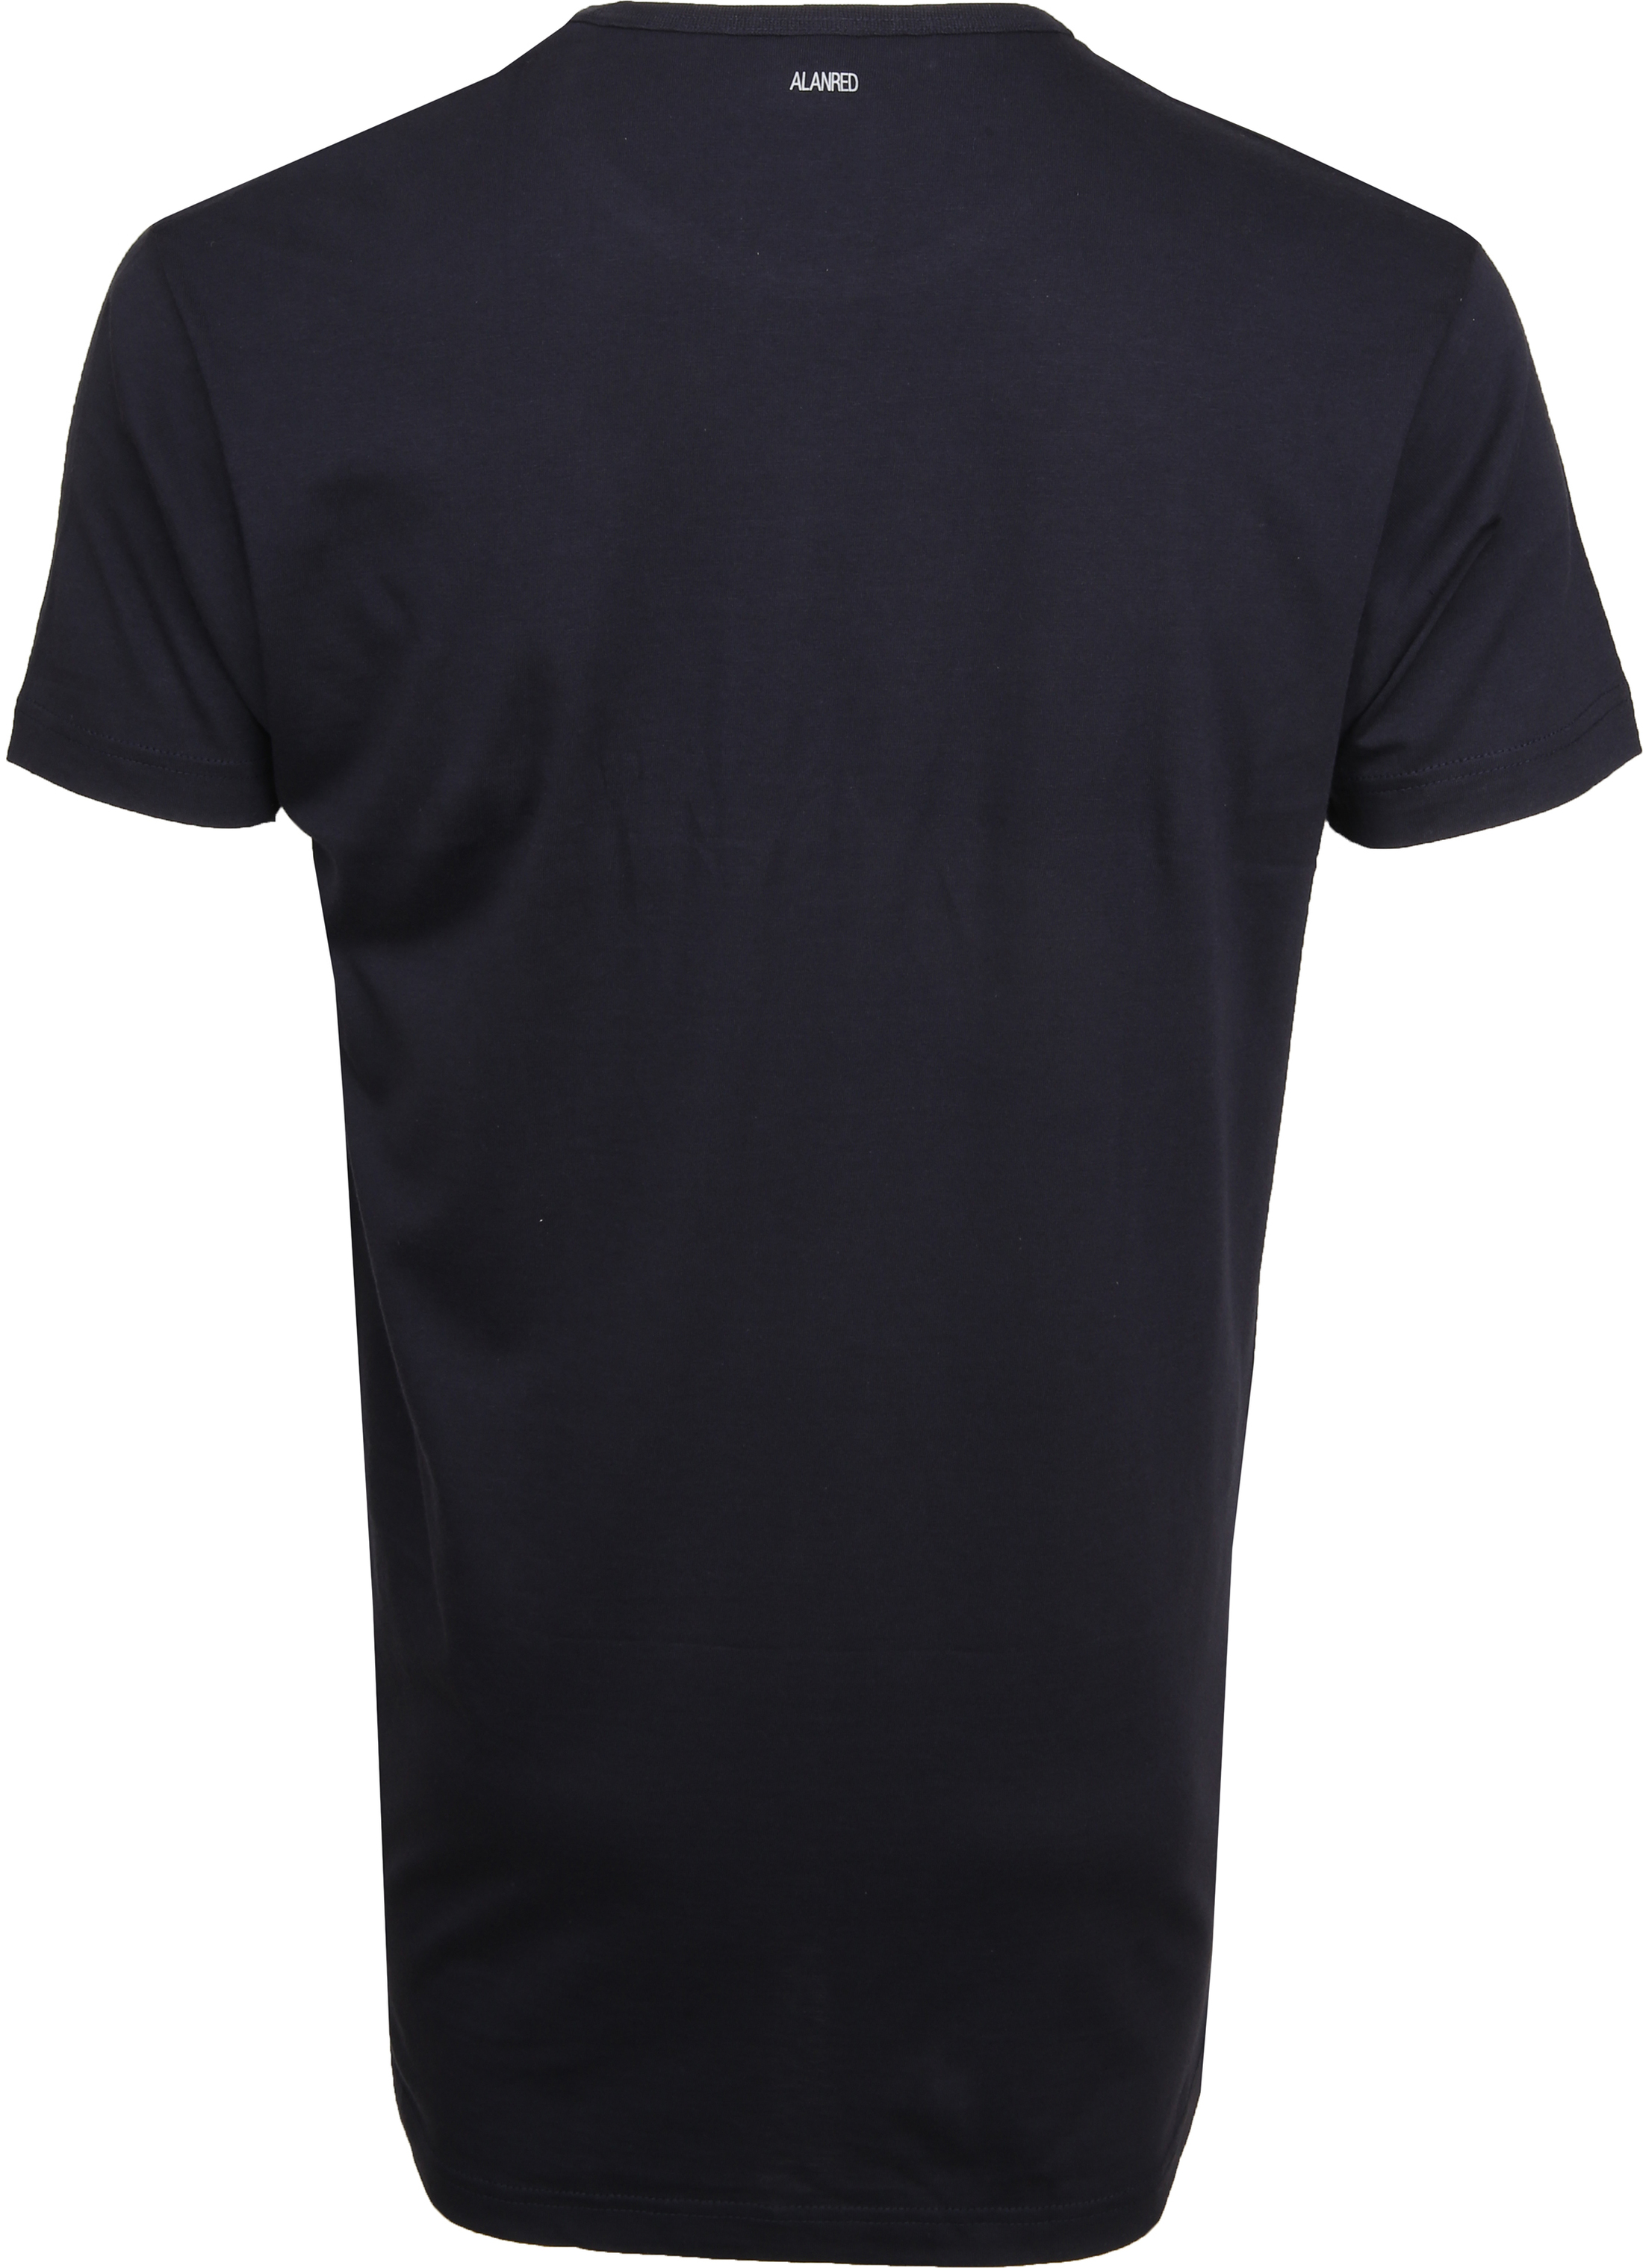 Alan Red Extra Long T-Shirts Derby Navy (1pack) foto 2